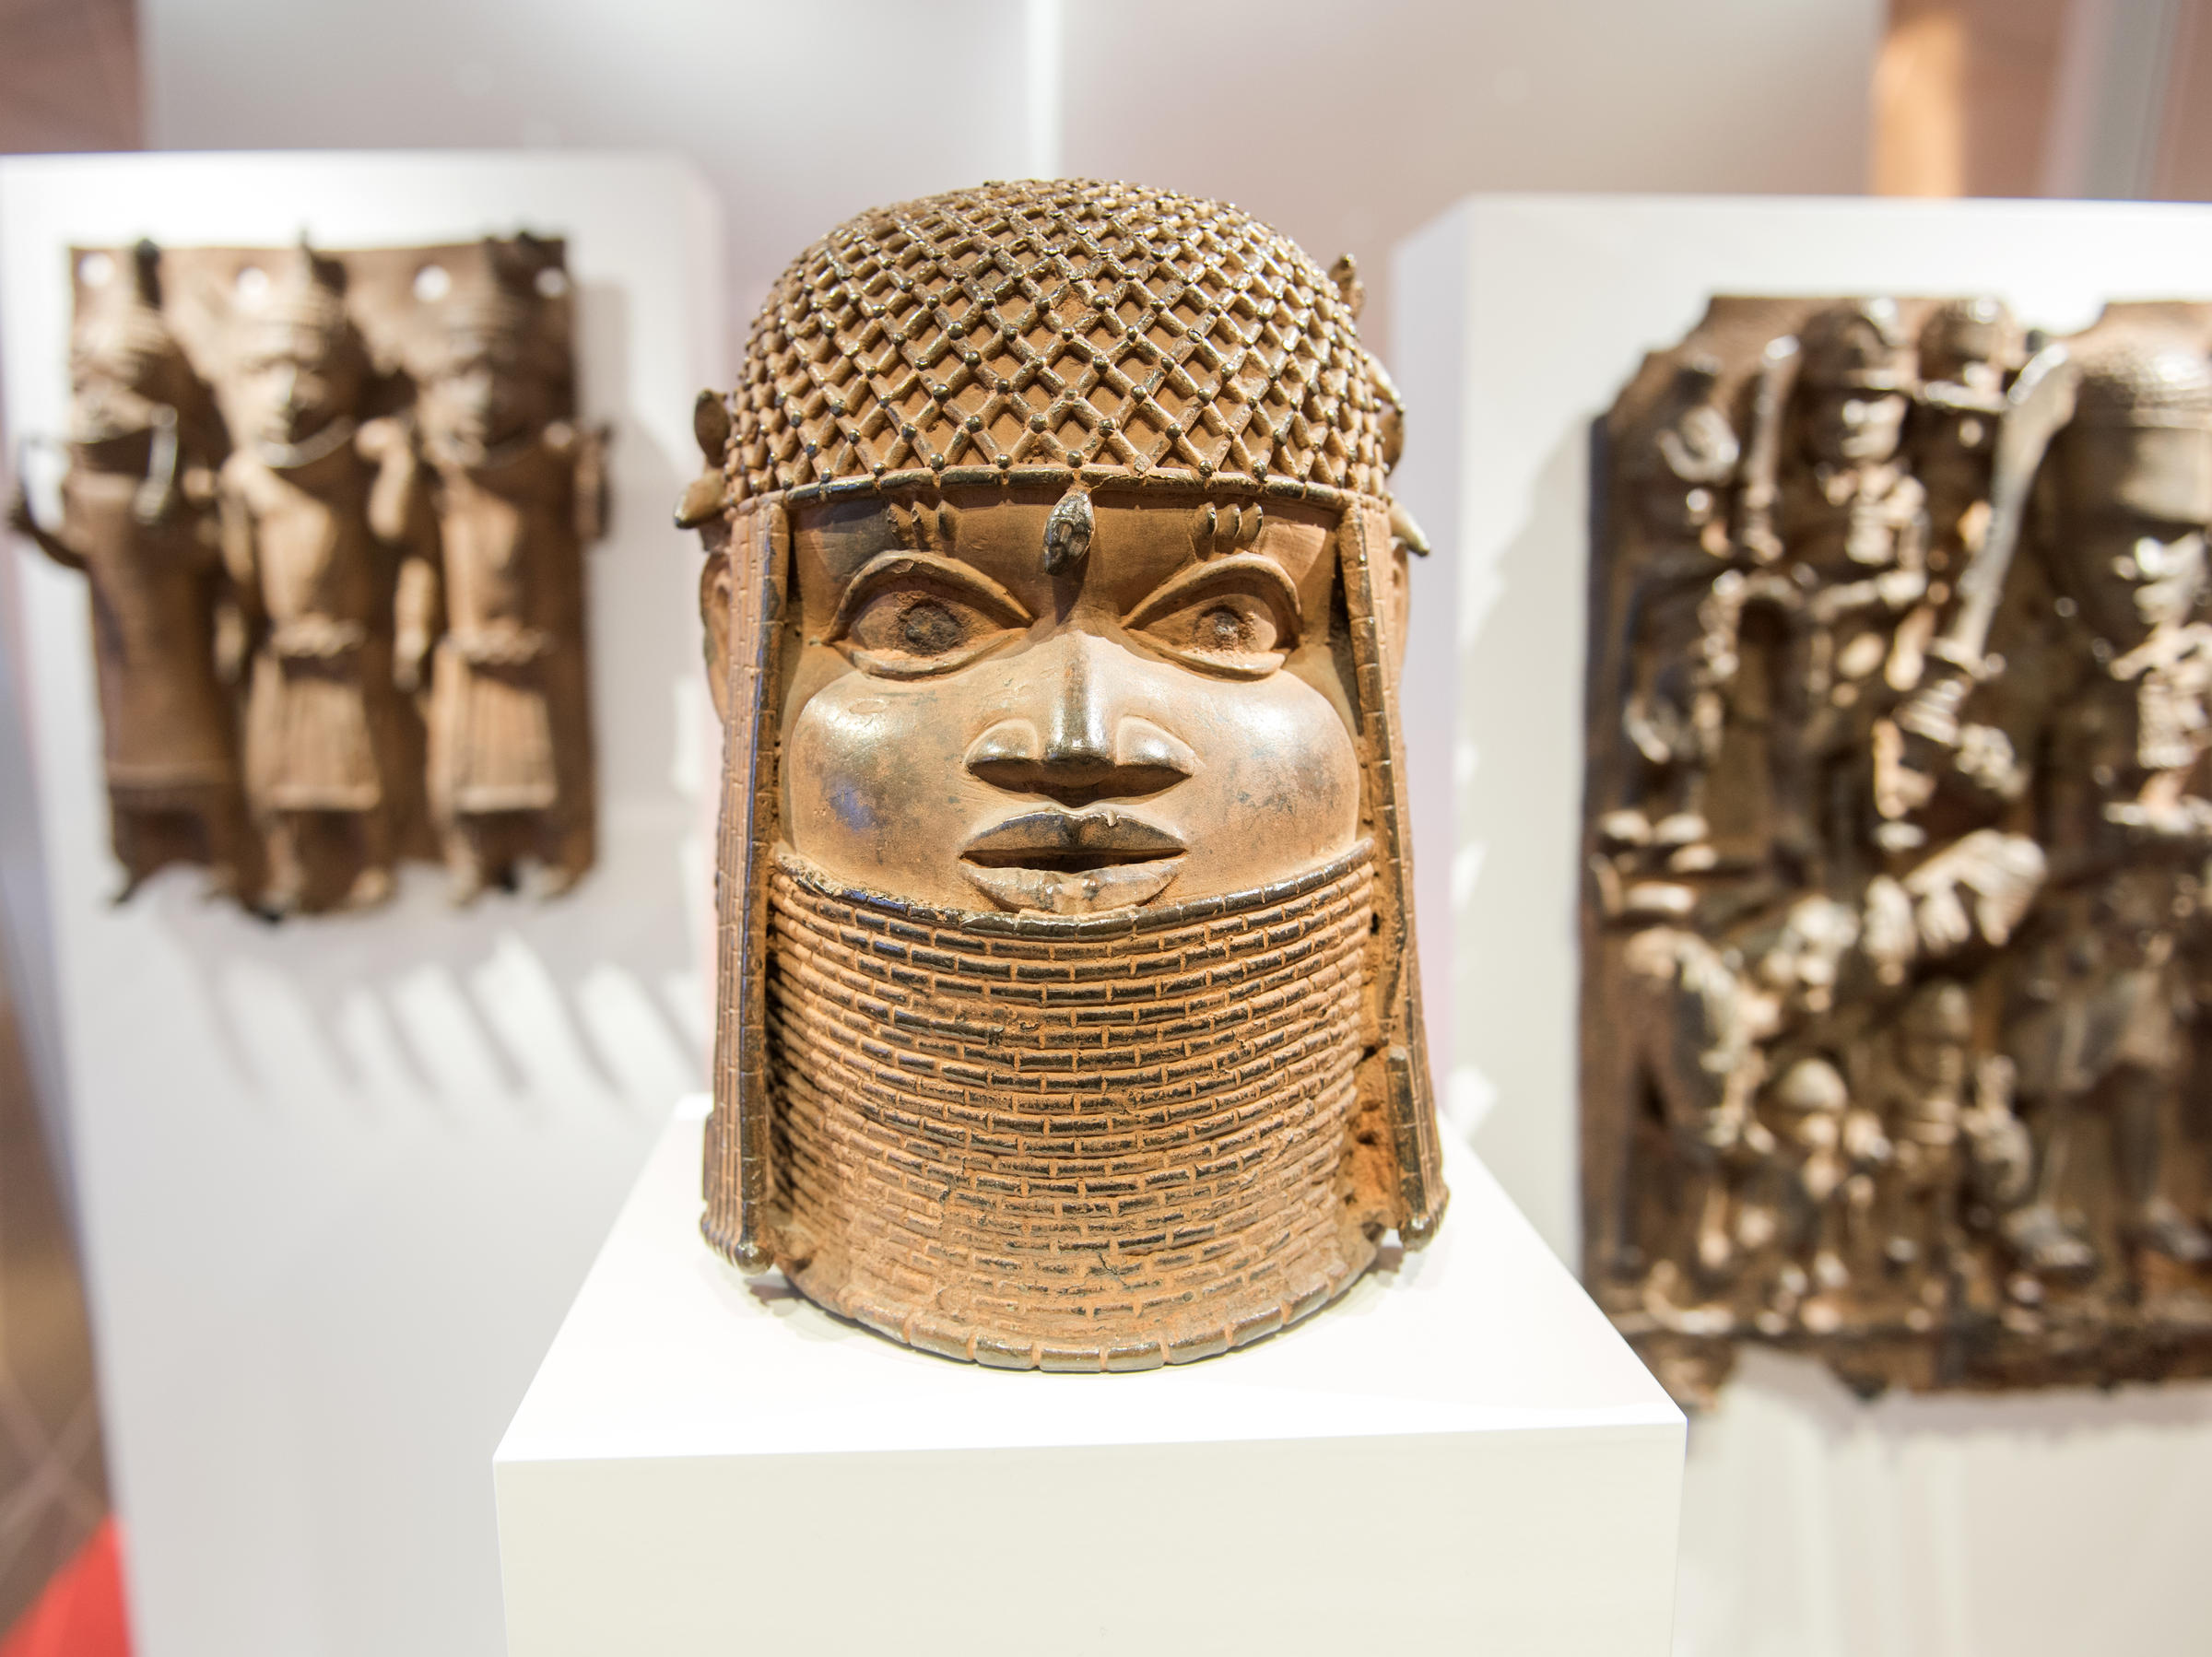 Museum Für Kunst Und Gewerbe Germany Will Repatriate Benin Bronzes, Plundered From Africa In The 19th Century | Bpr